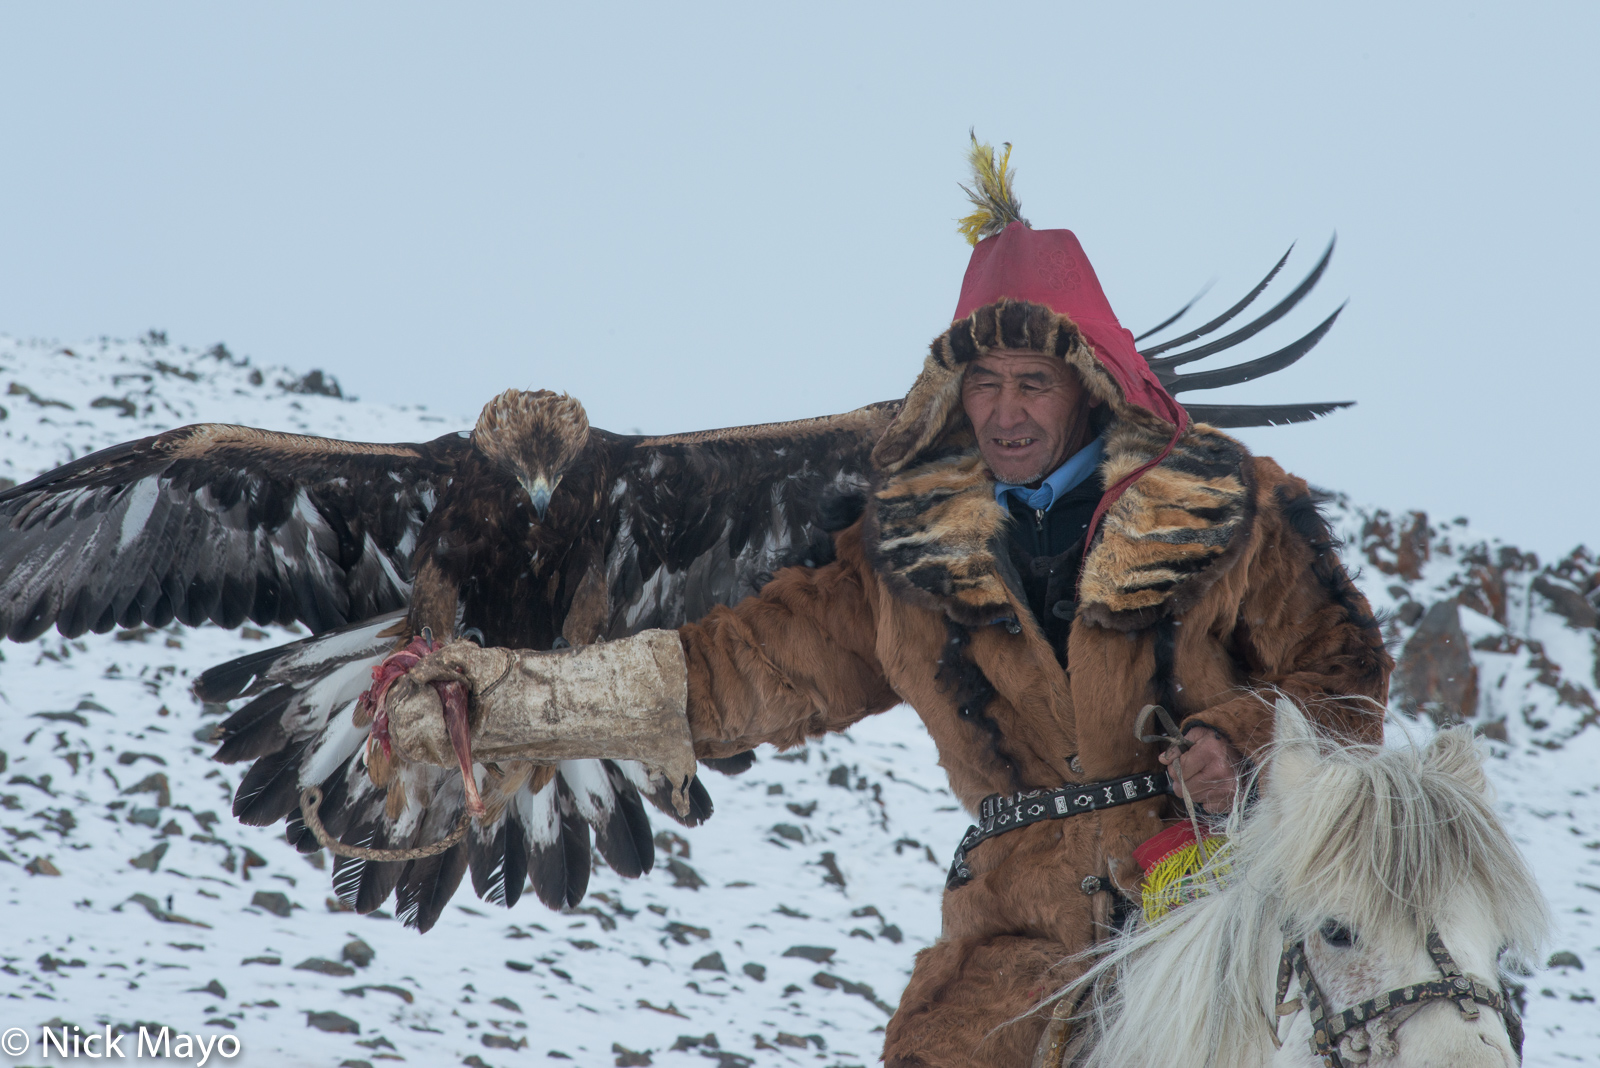 Bayan-Ölgii, Eagle, Horse, Hunting, Kazakh, Mongolia, photo